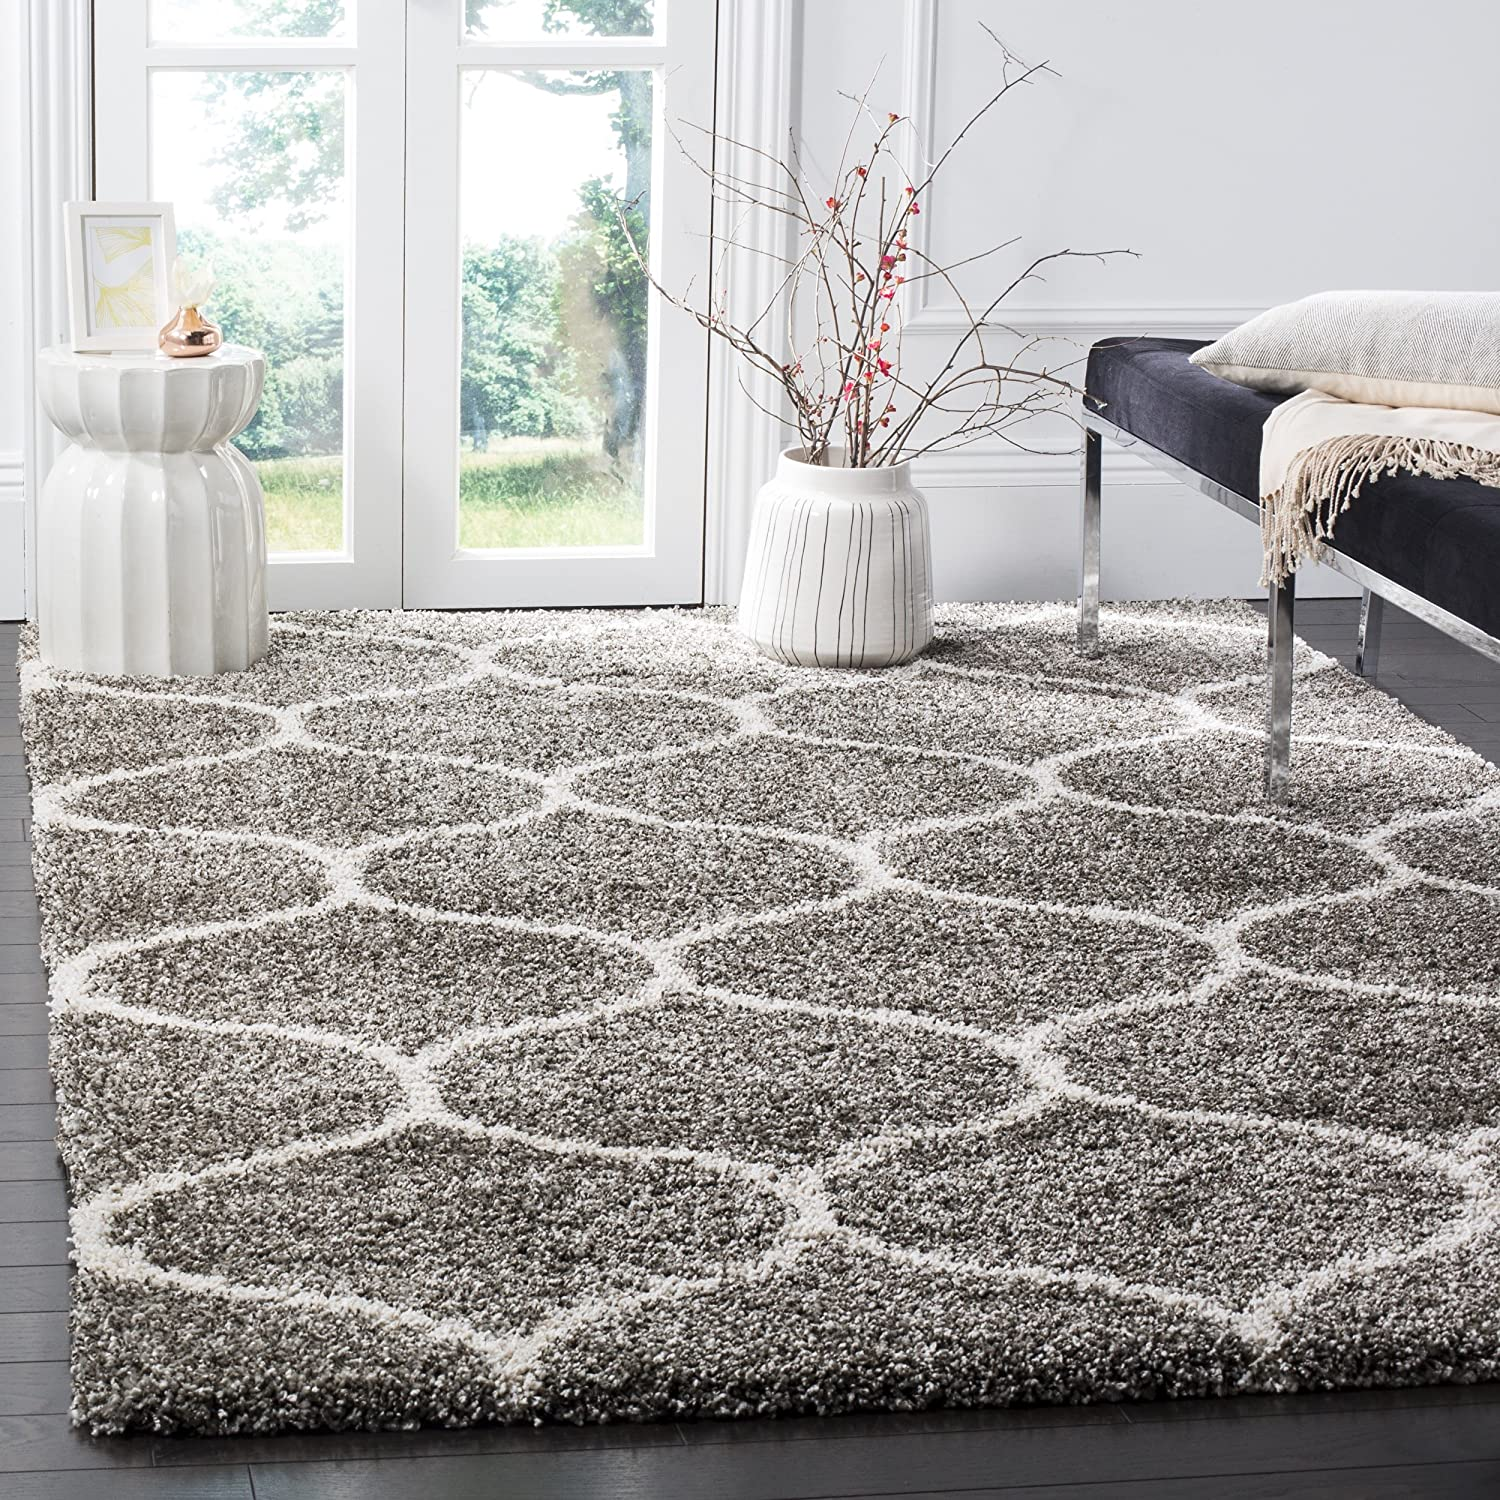 Top 5 Living Room Rugs: Buying Guide & Reviews 12